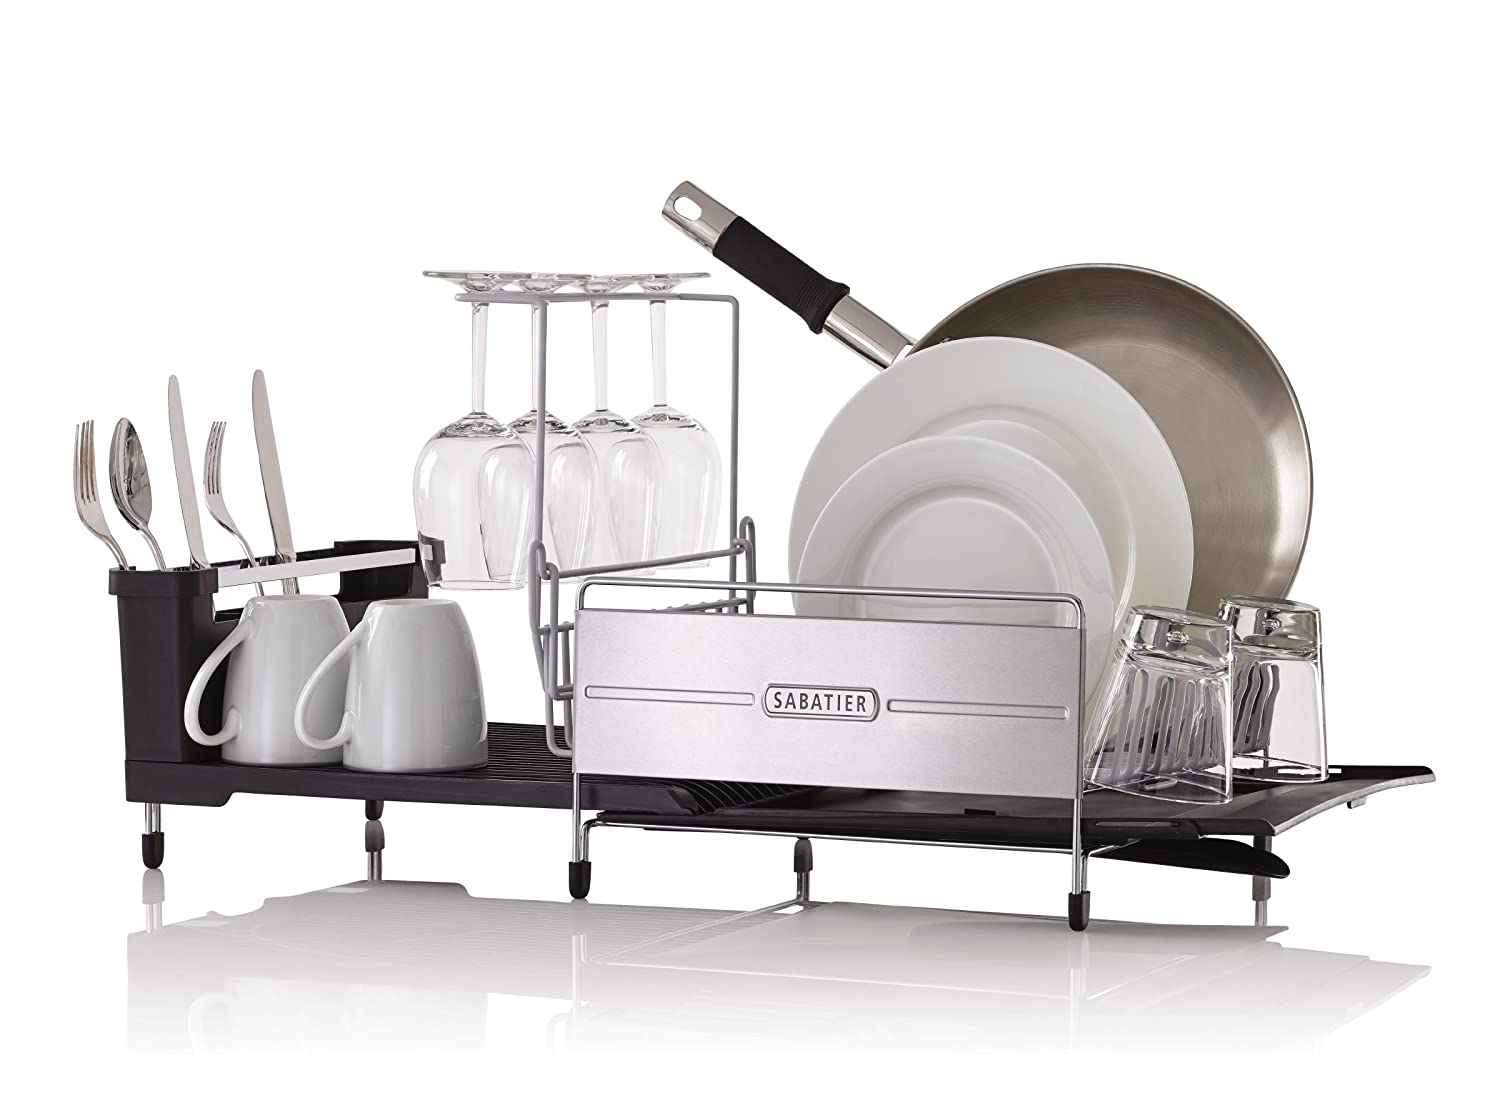 Silver//Gray Sabatier 5199813 Expandable Stainless Steel Dish Rack with Rust-Resistant Soft Coated Wires and Bi-Directional Spout